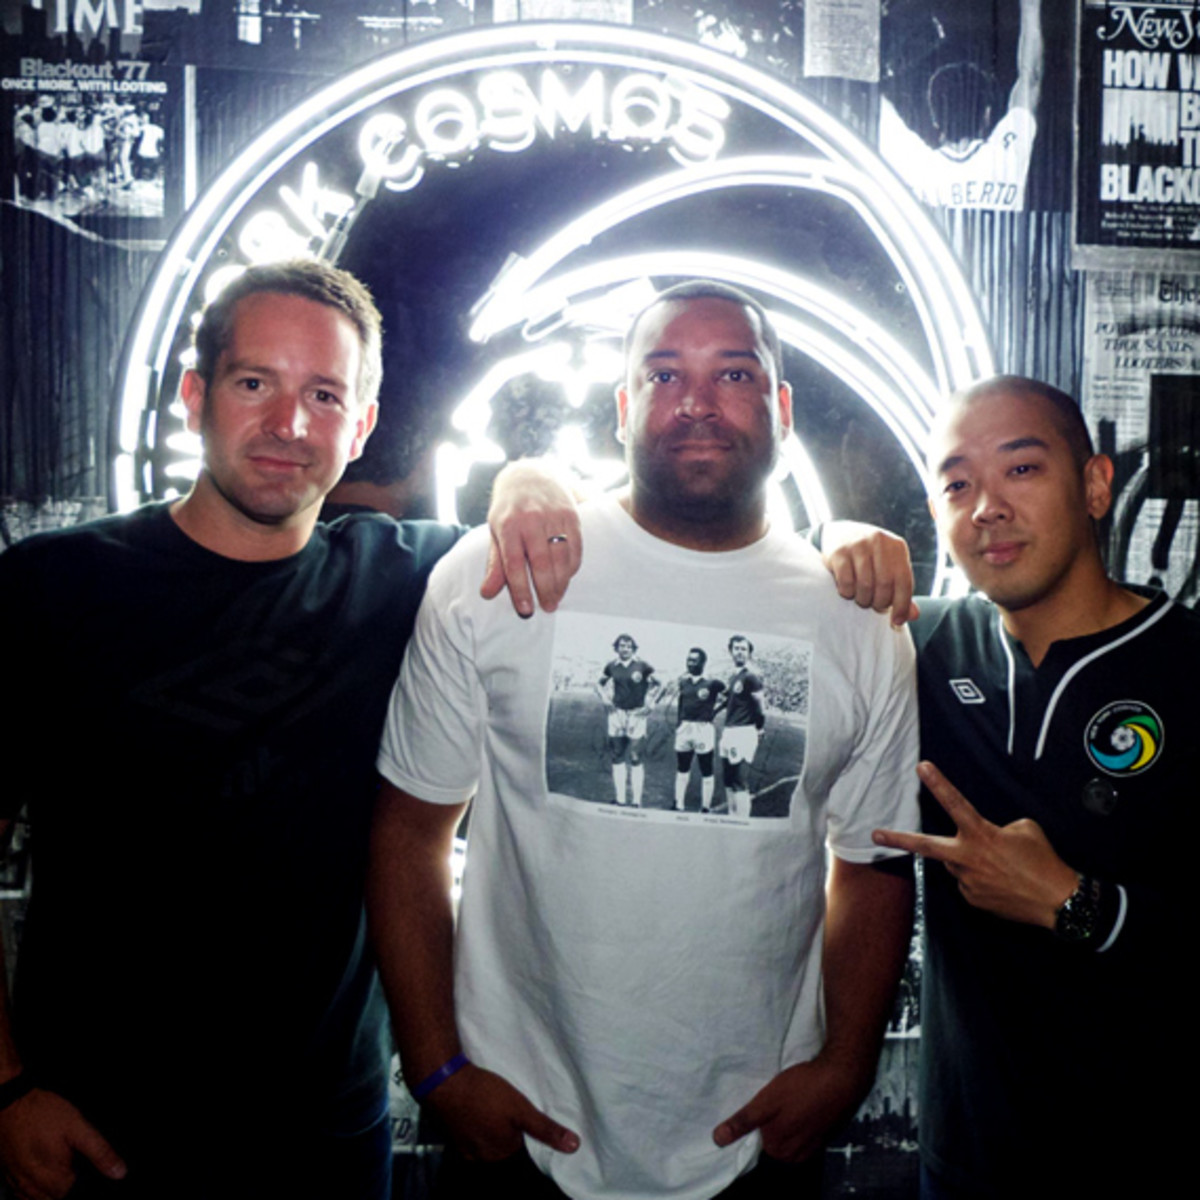 umbro-new-york-cosmos-blackout-launch-reed-space-07